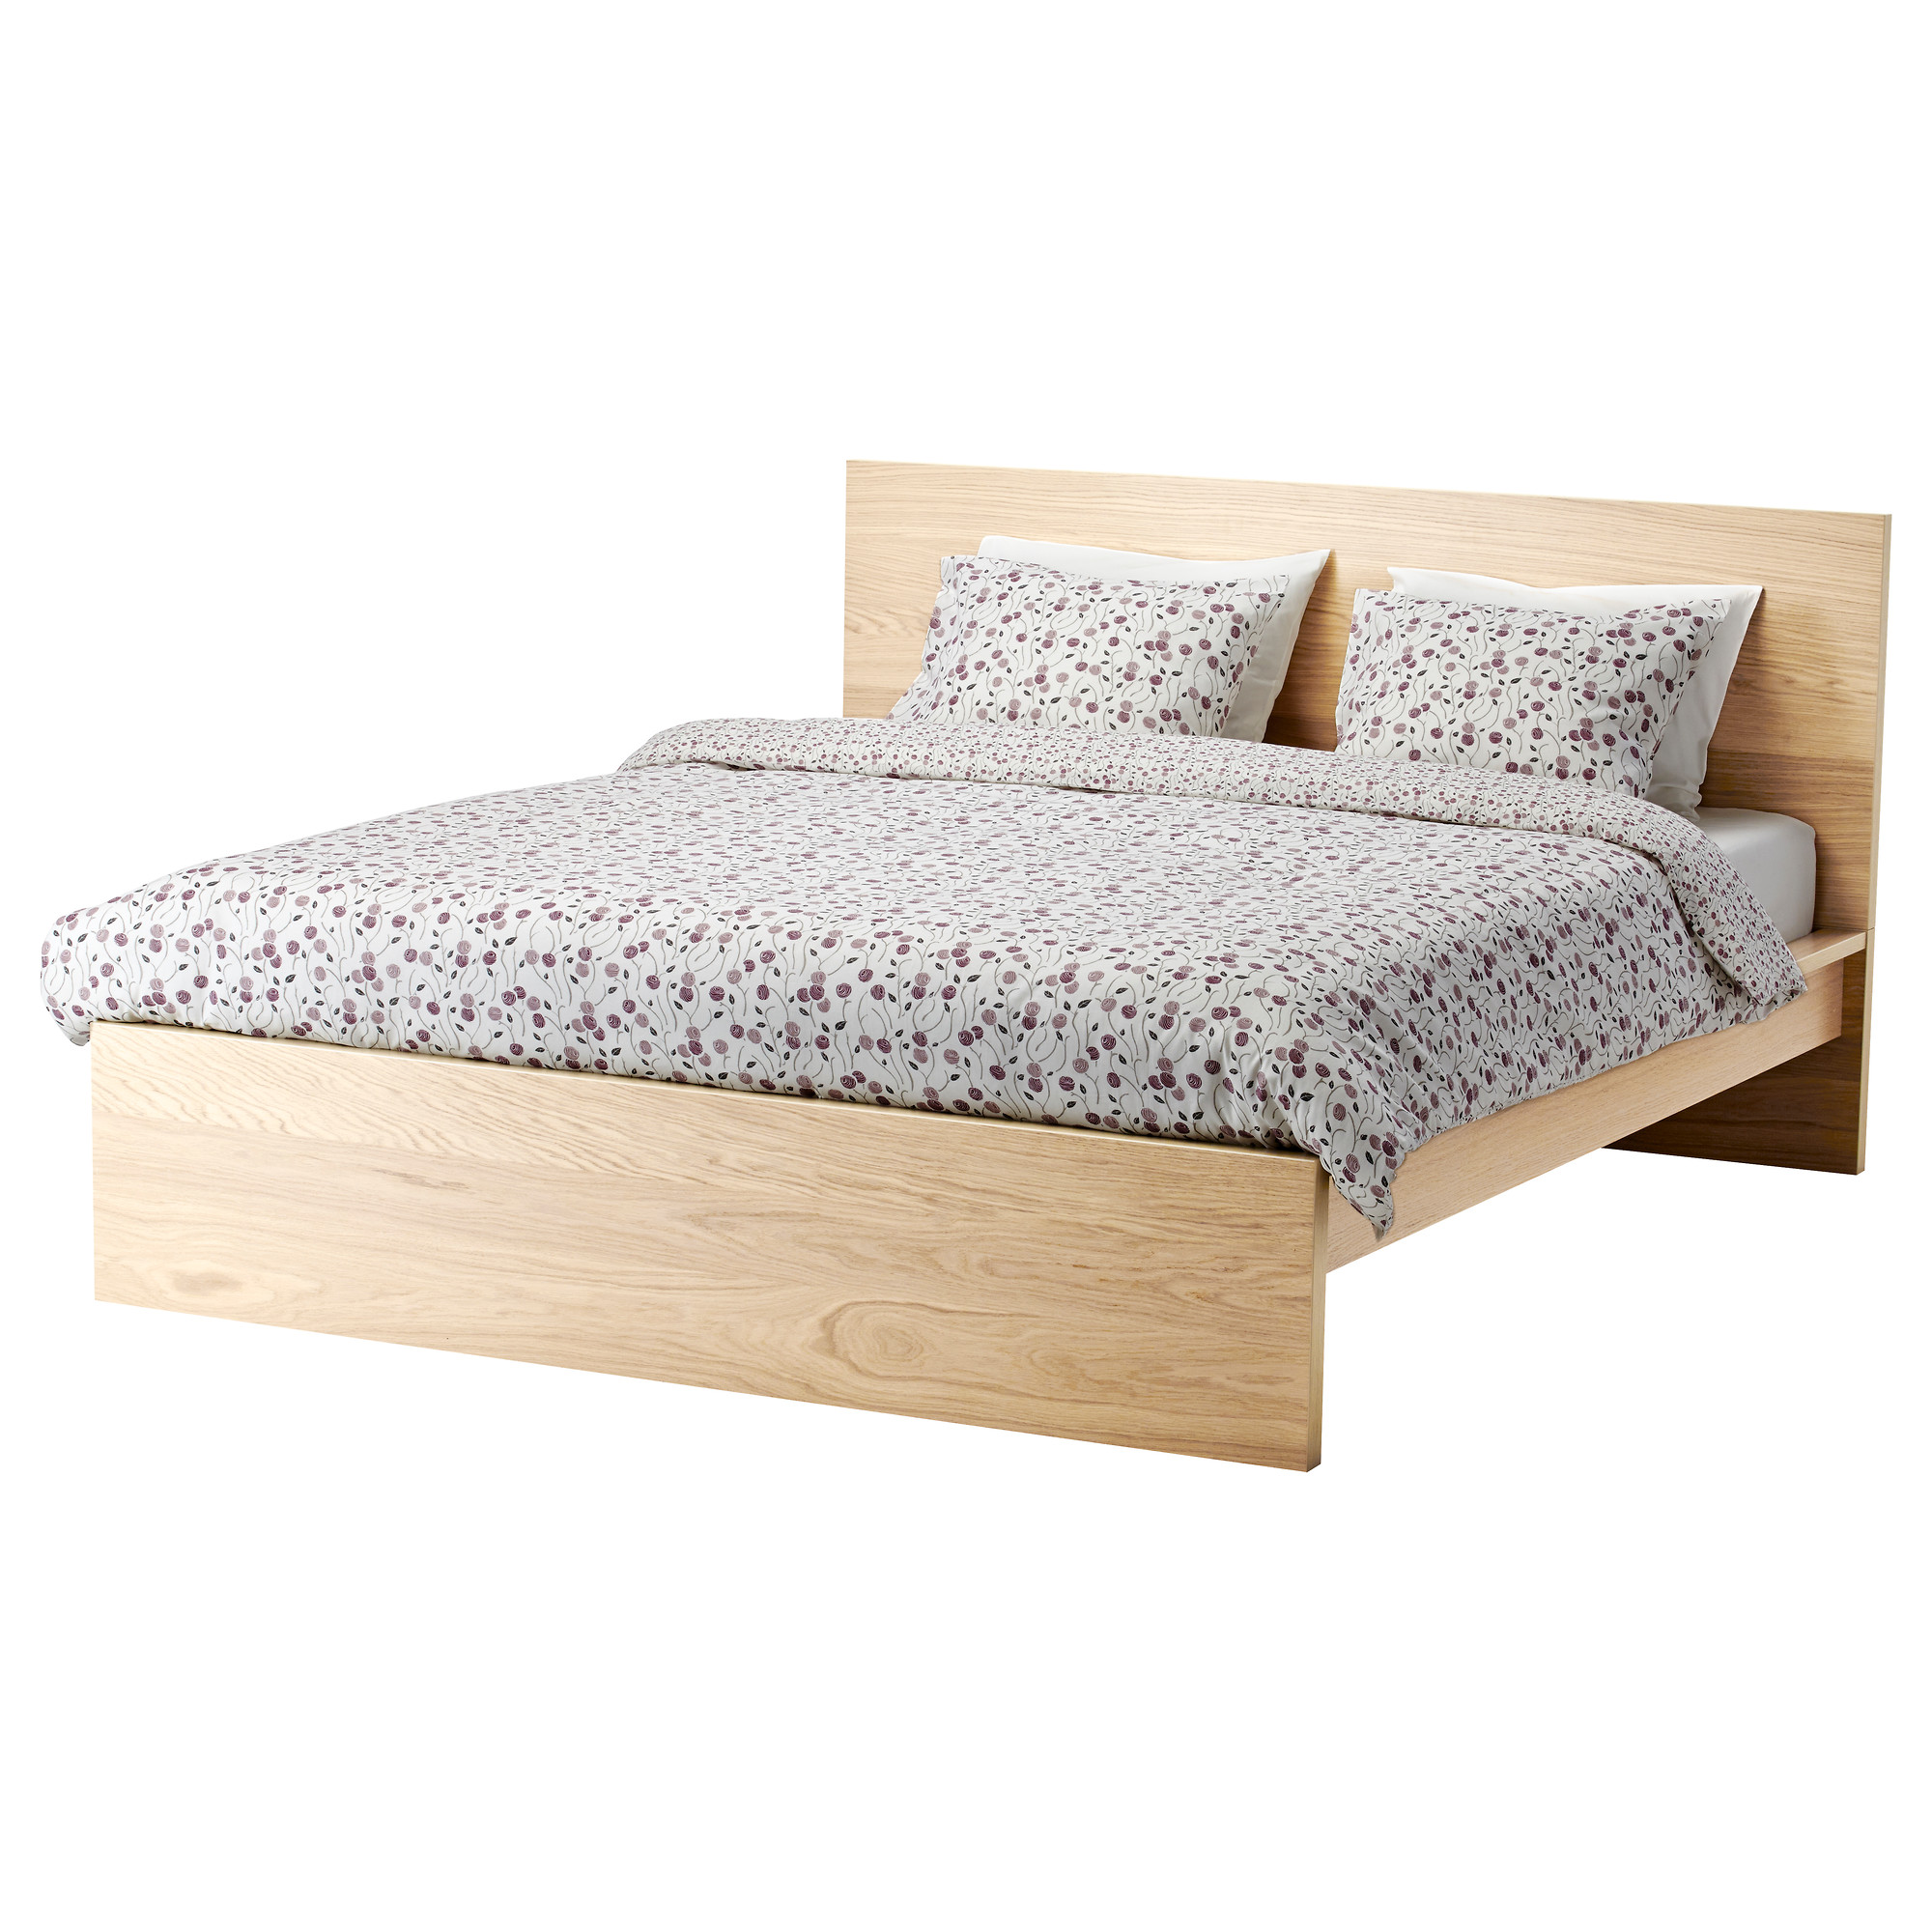 Natural wood platform bed frames for sale